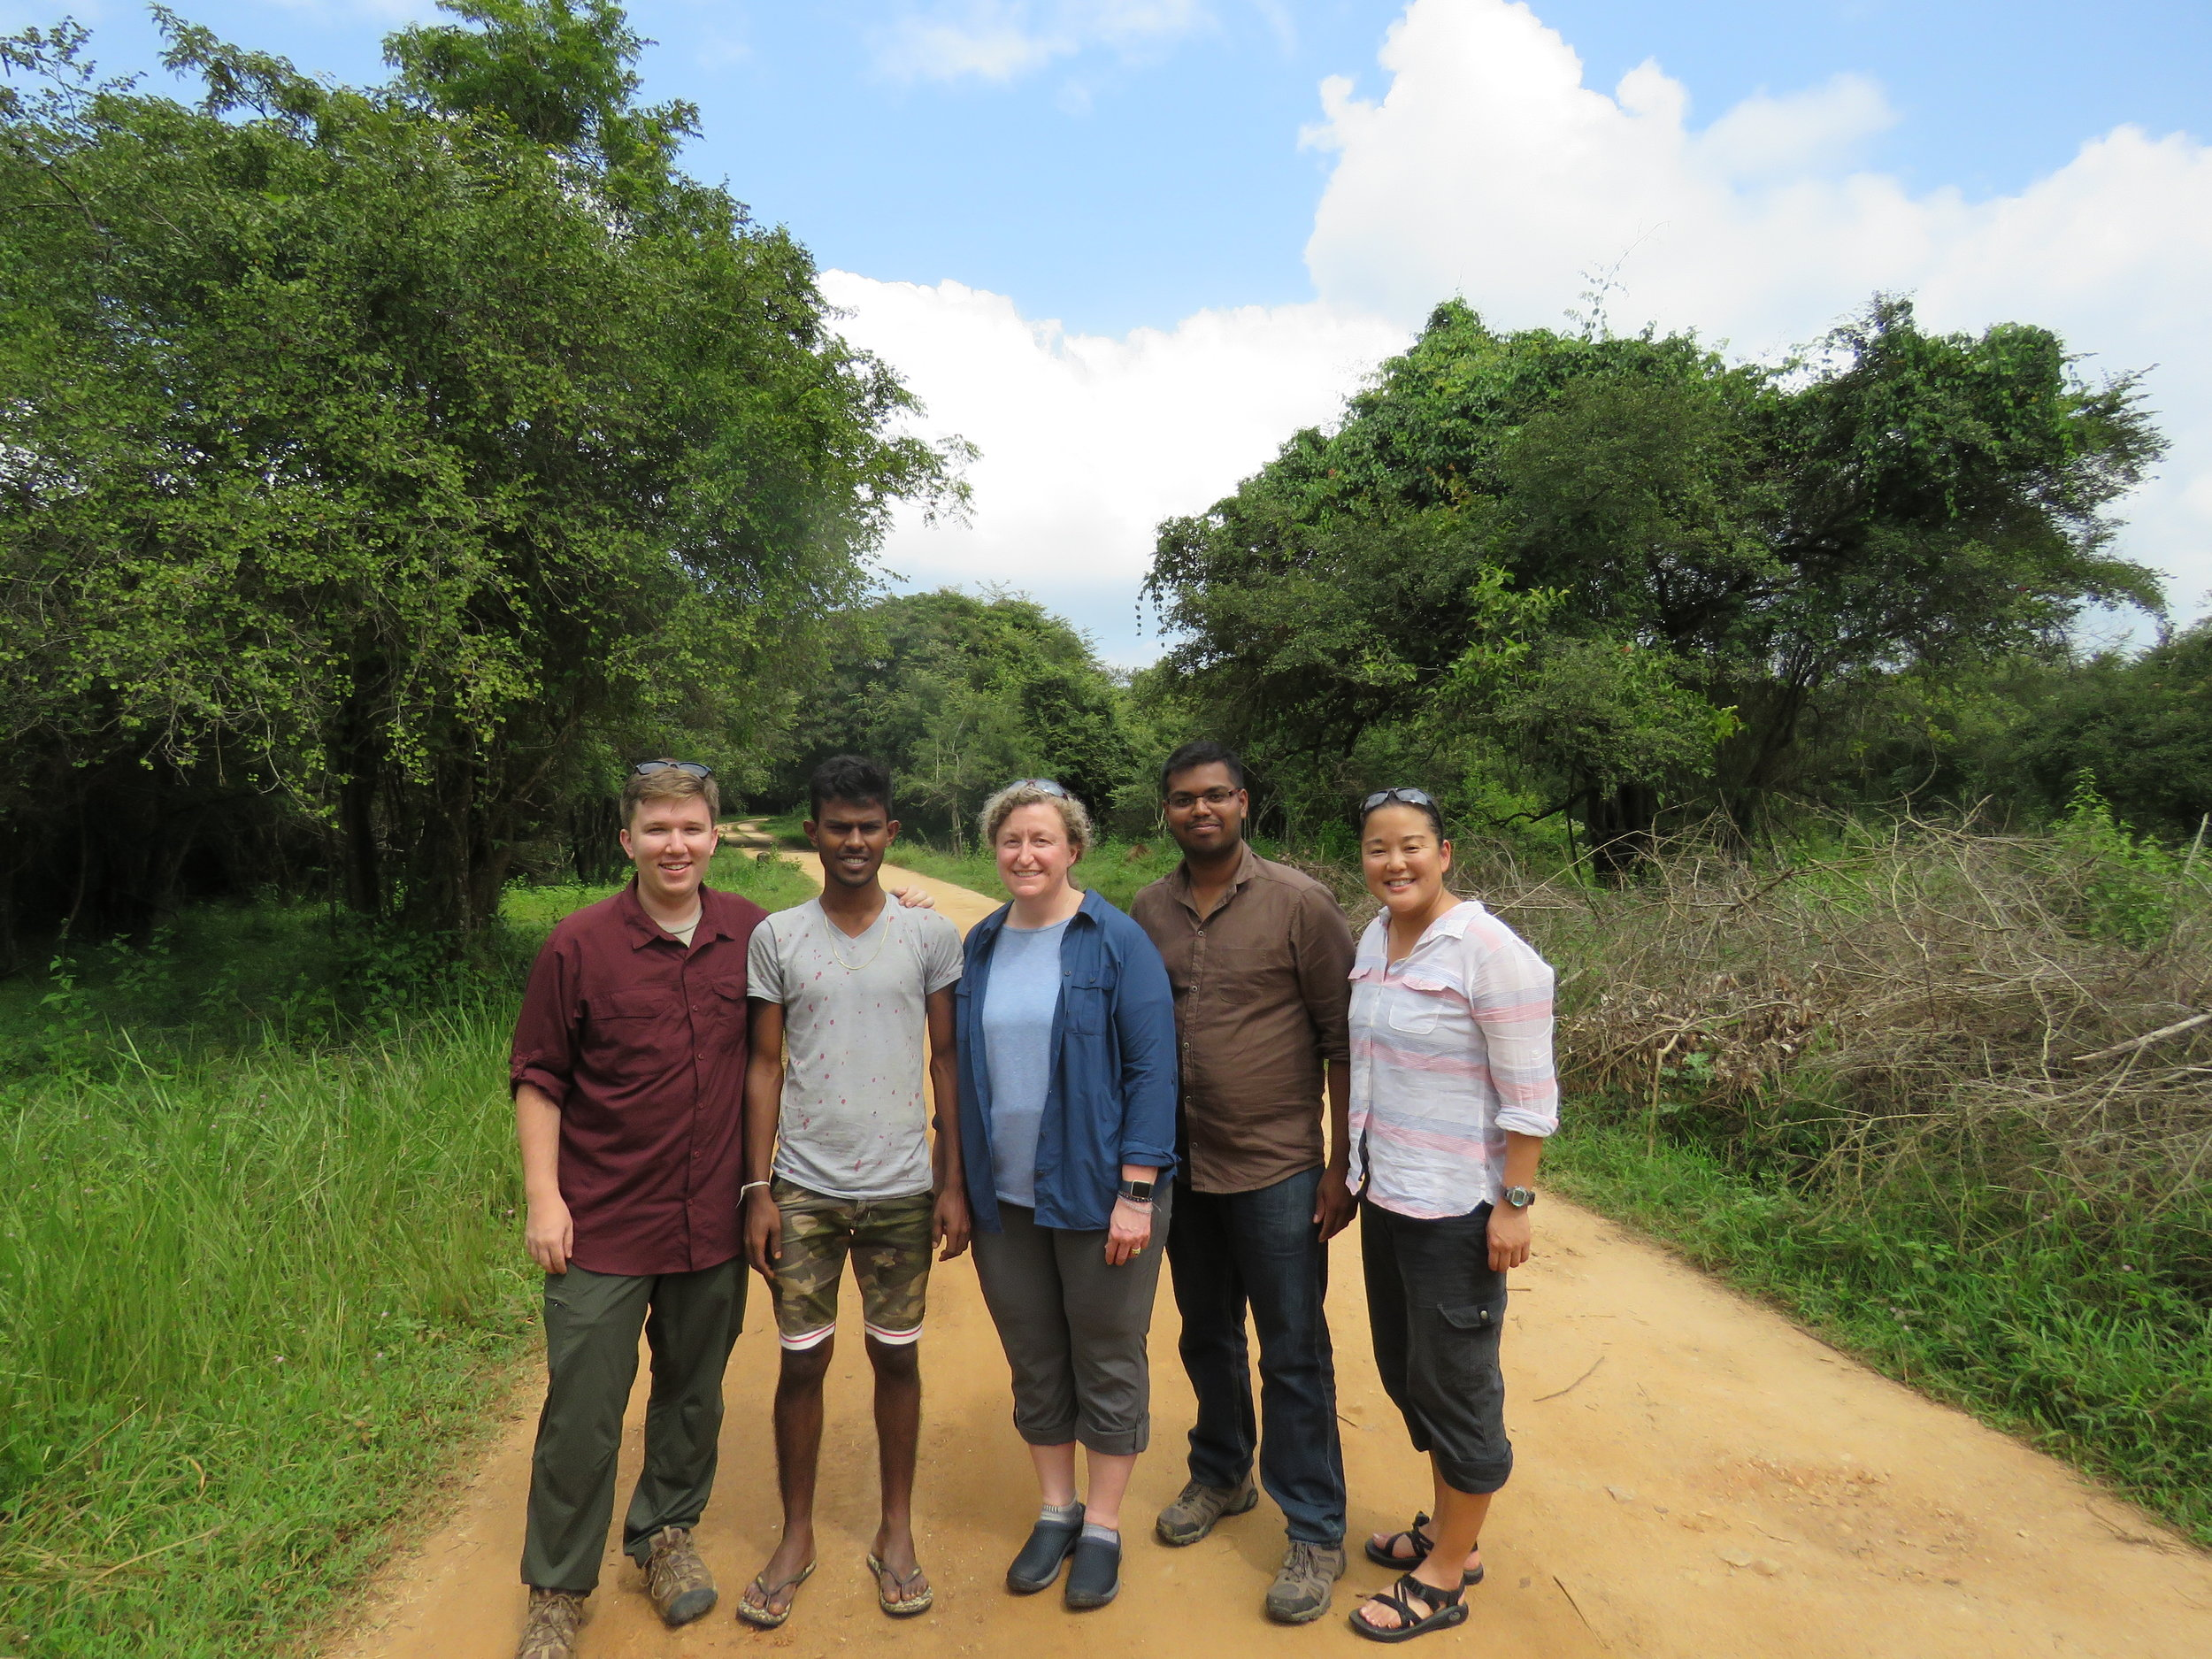 We took this group photo after admitting defeat and getting in touch with our rescuers. Left to right: Chase, Nirosh, Elizabeth, Sachintha, and Wendy.